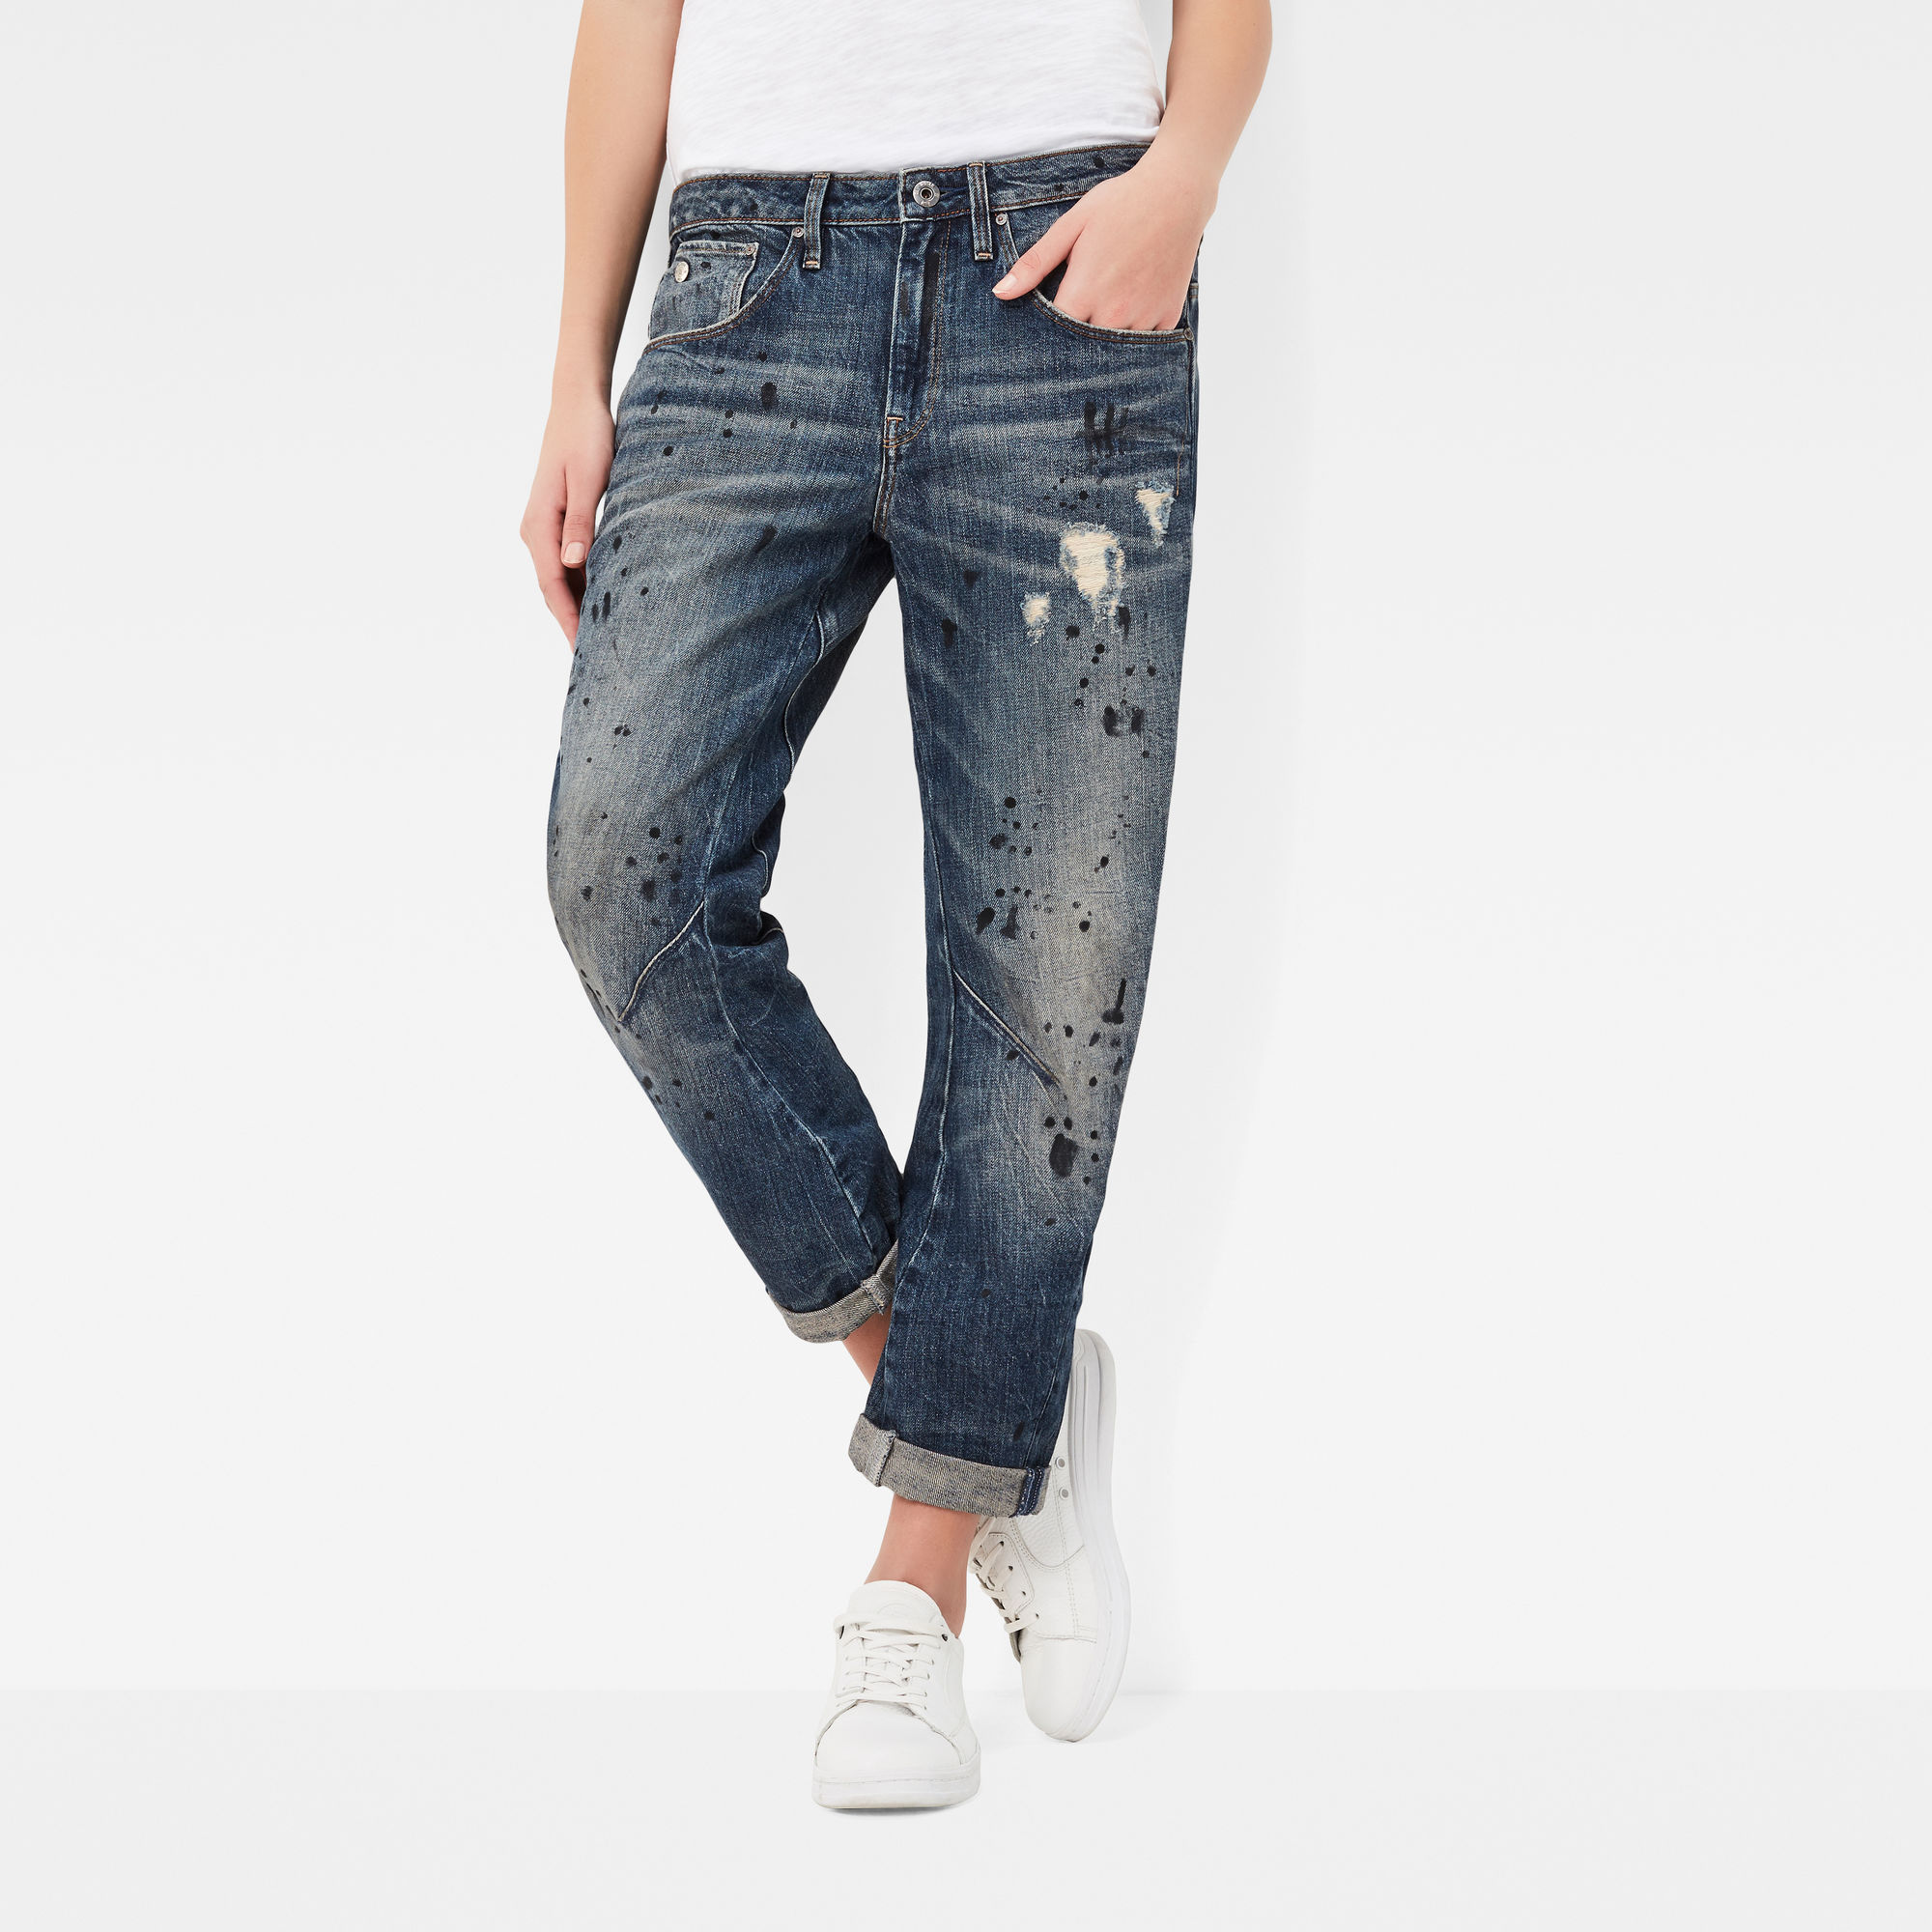 Arc 3D Low Waist Boyfriend 7 8 Length Jeans